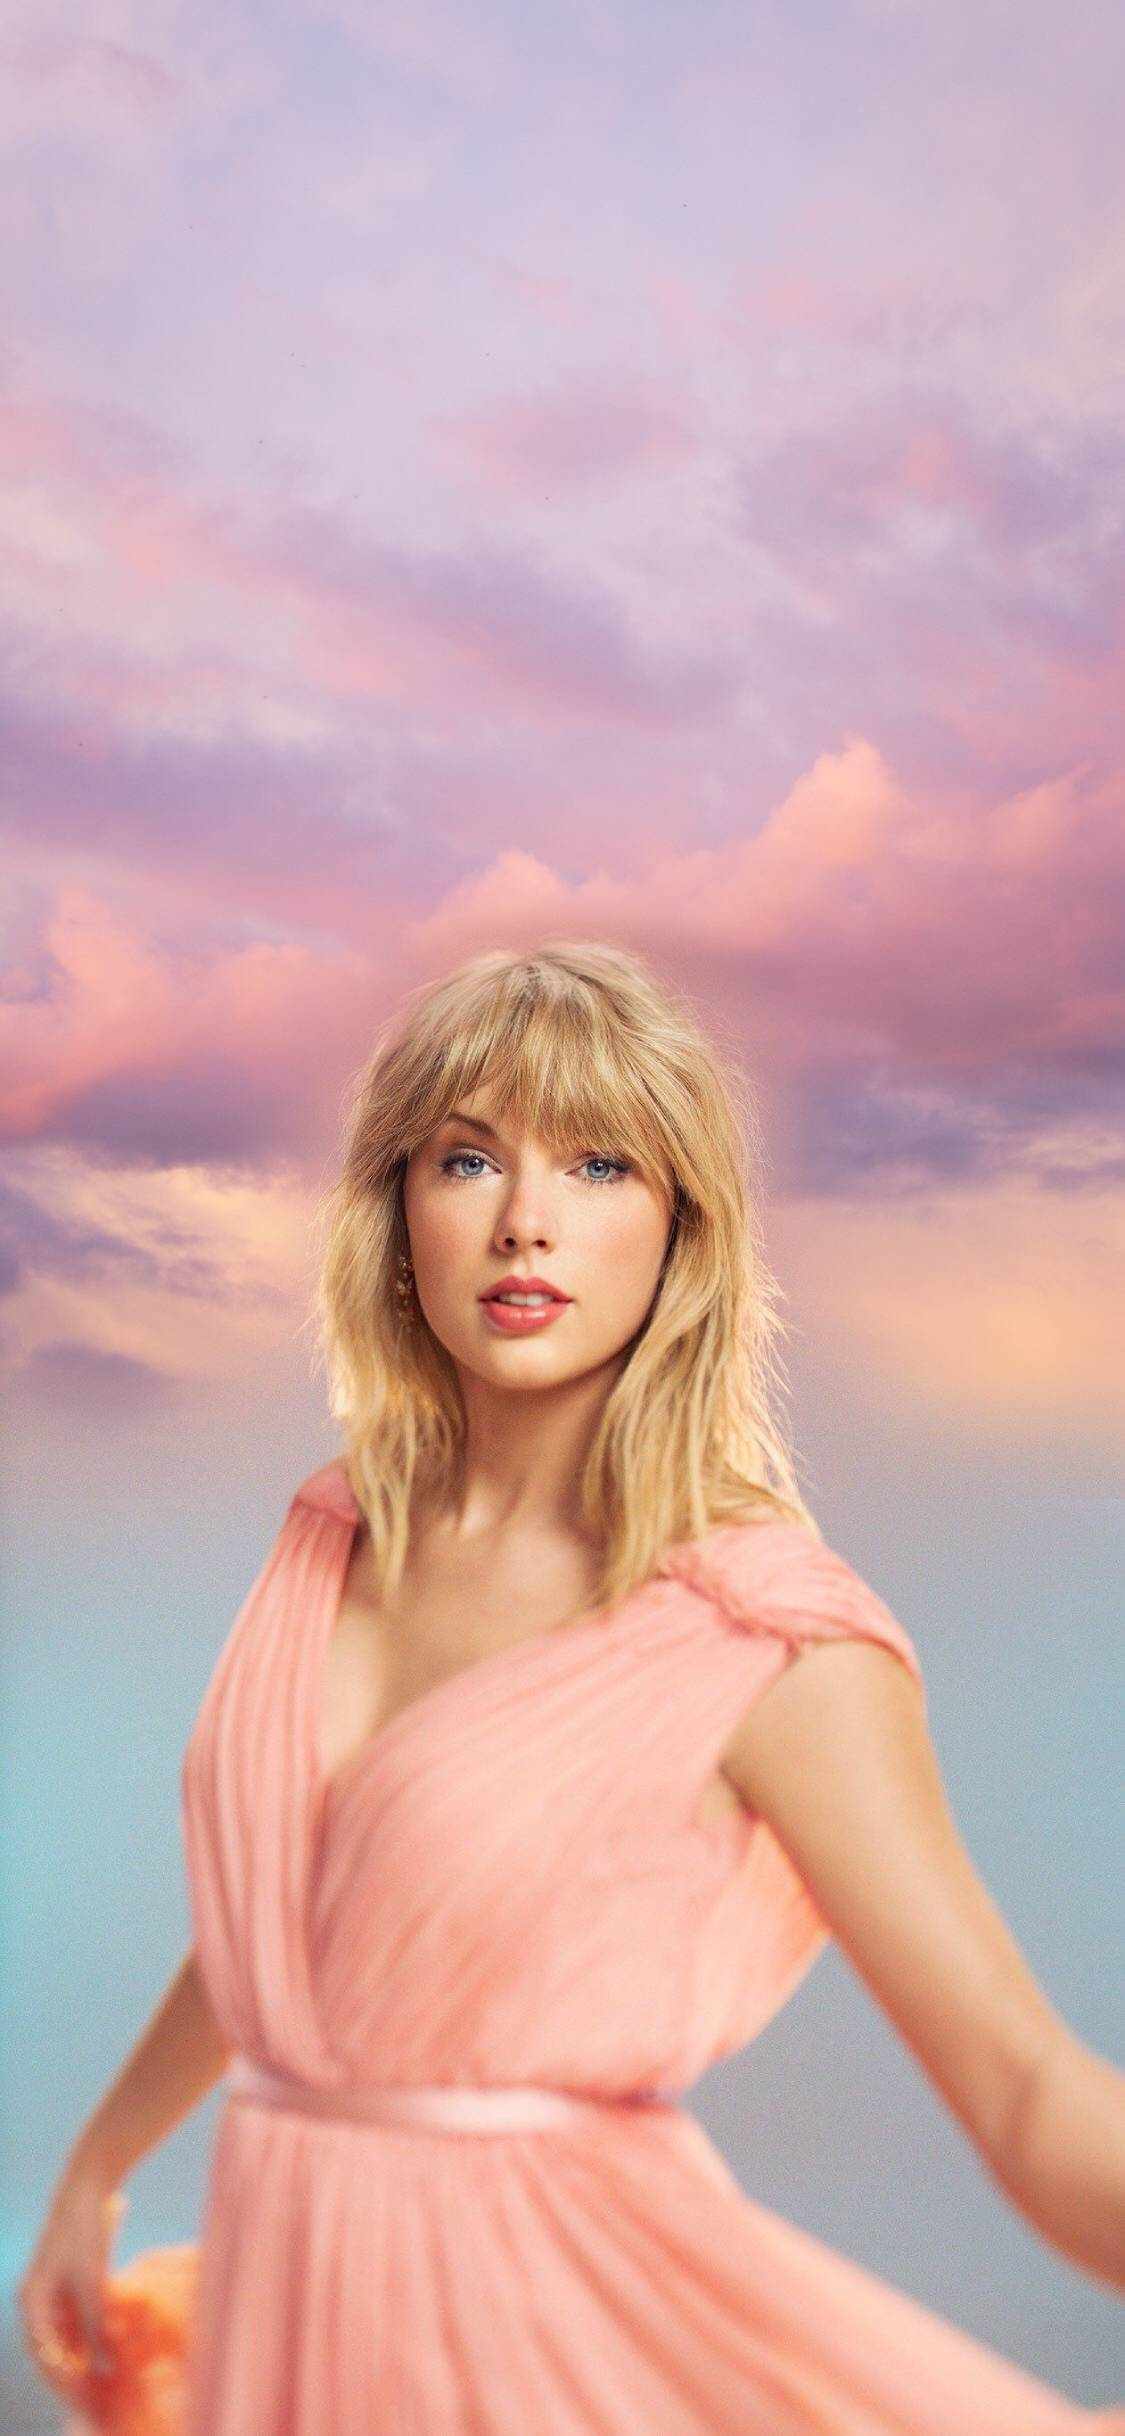 Taylor Swift Folklore Wallpapers - Wallpaper Cave